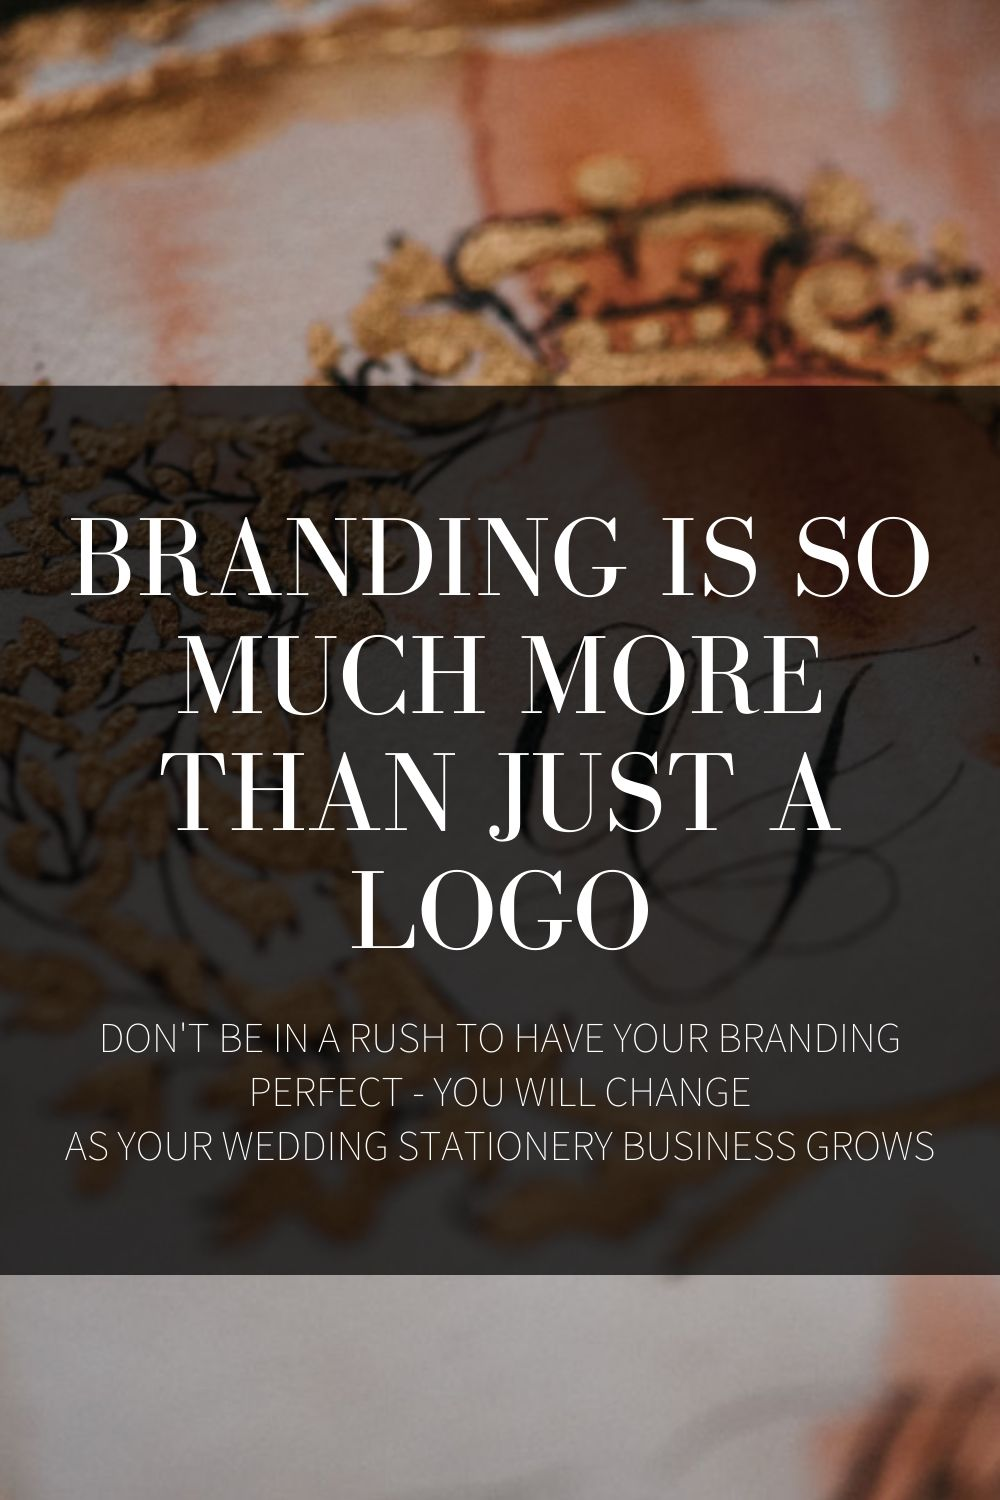 DON'T BE IN A RUSH WITH YOUR COMPANY BRANDING